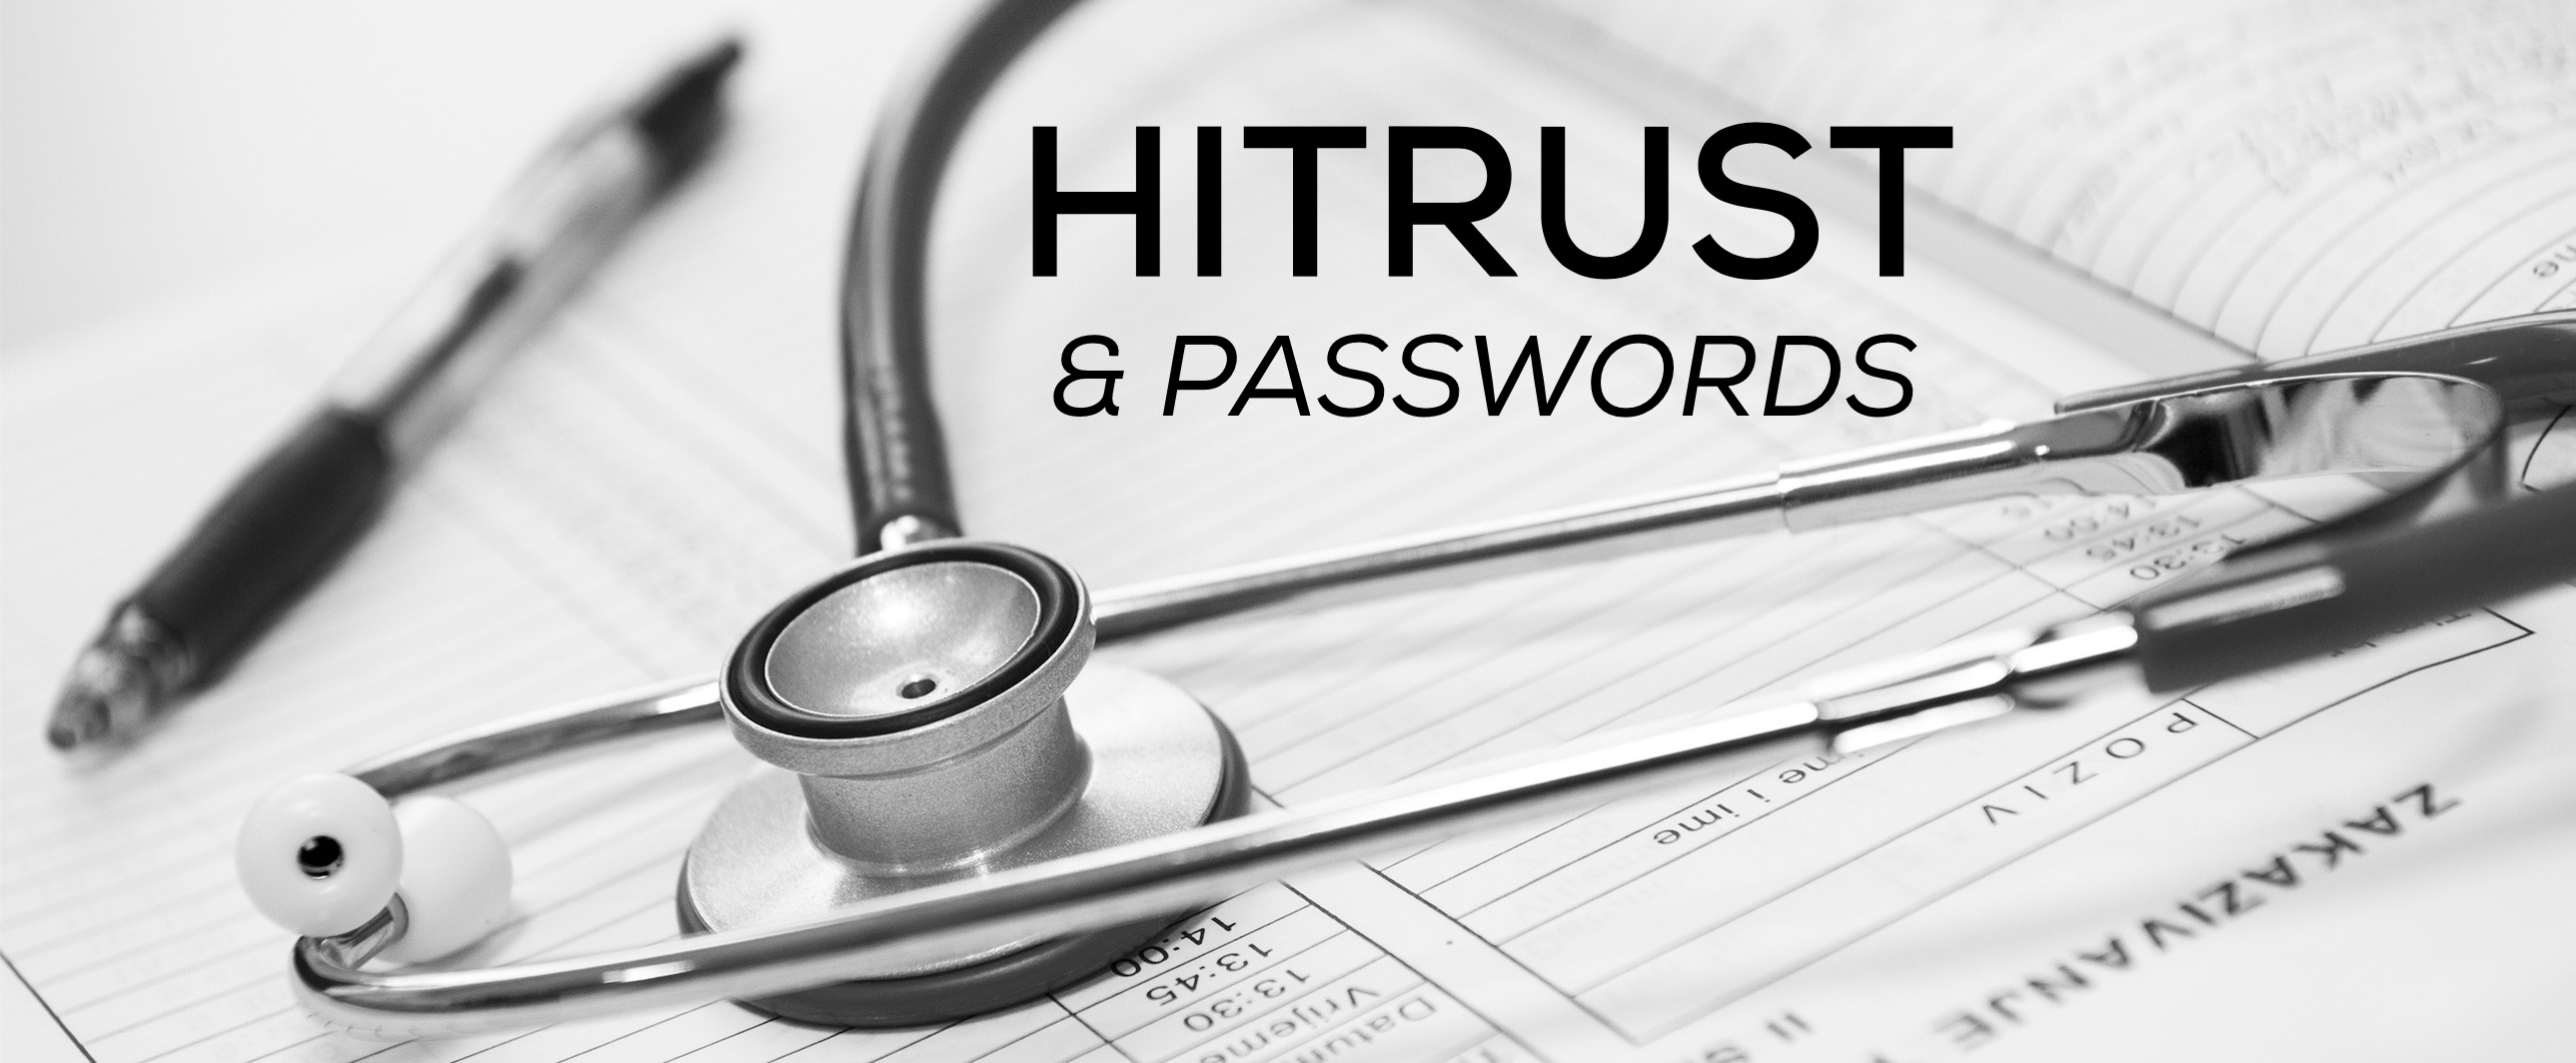 HITRUST & Password Policy: https://www.enzoic.com/hitrust-password/